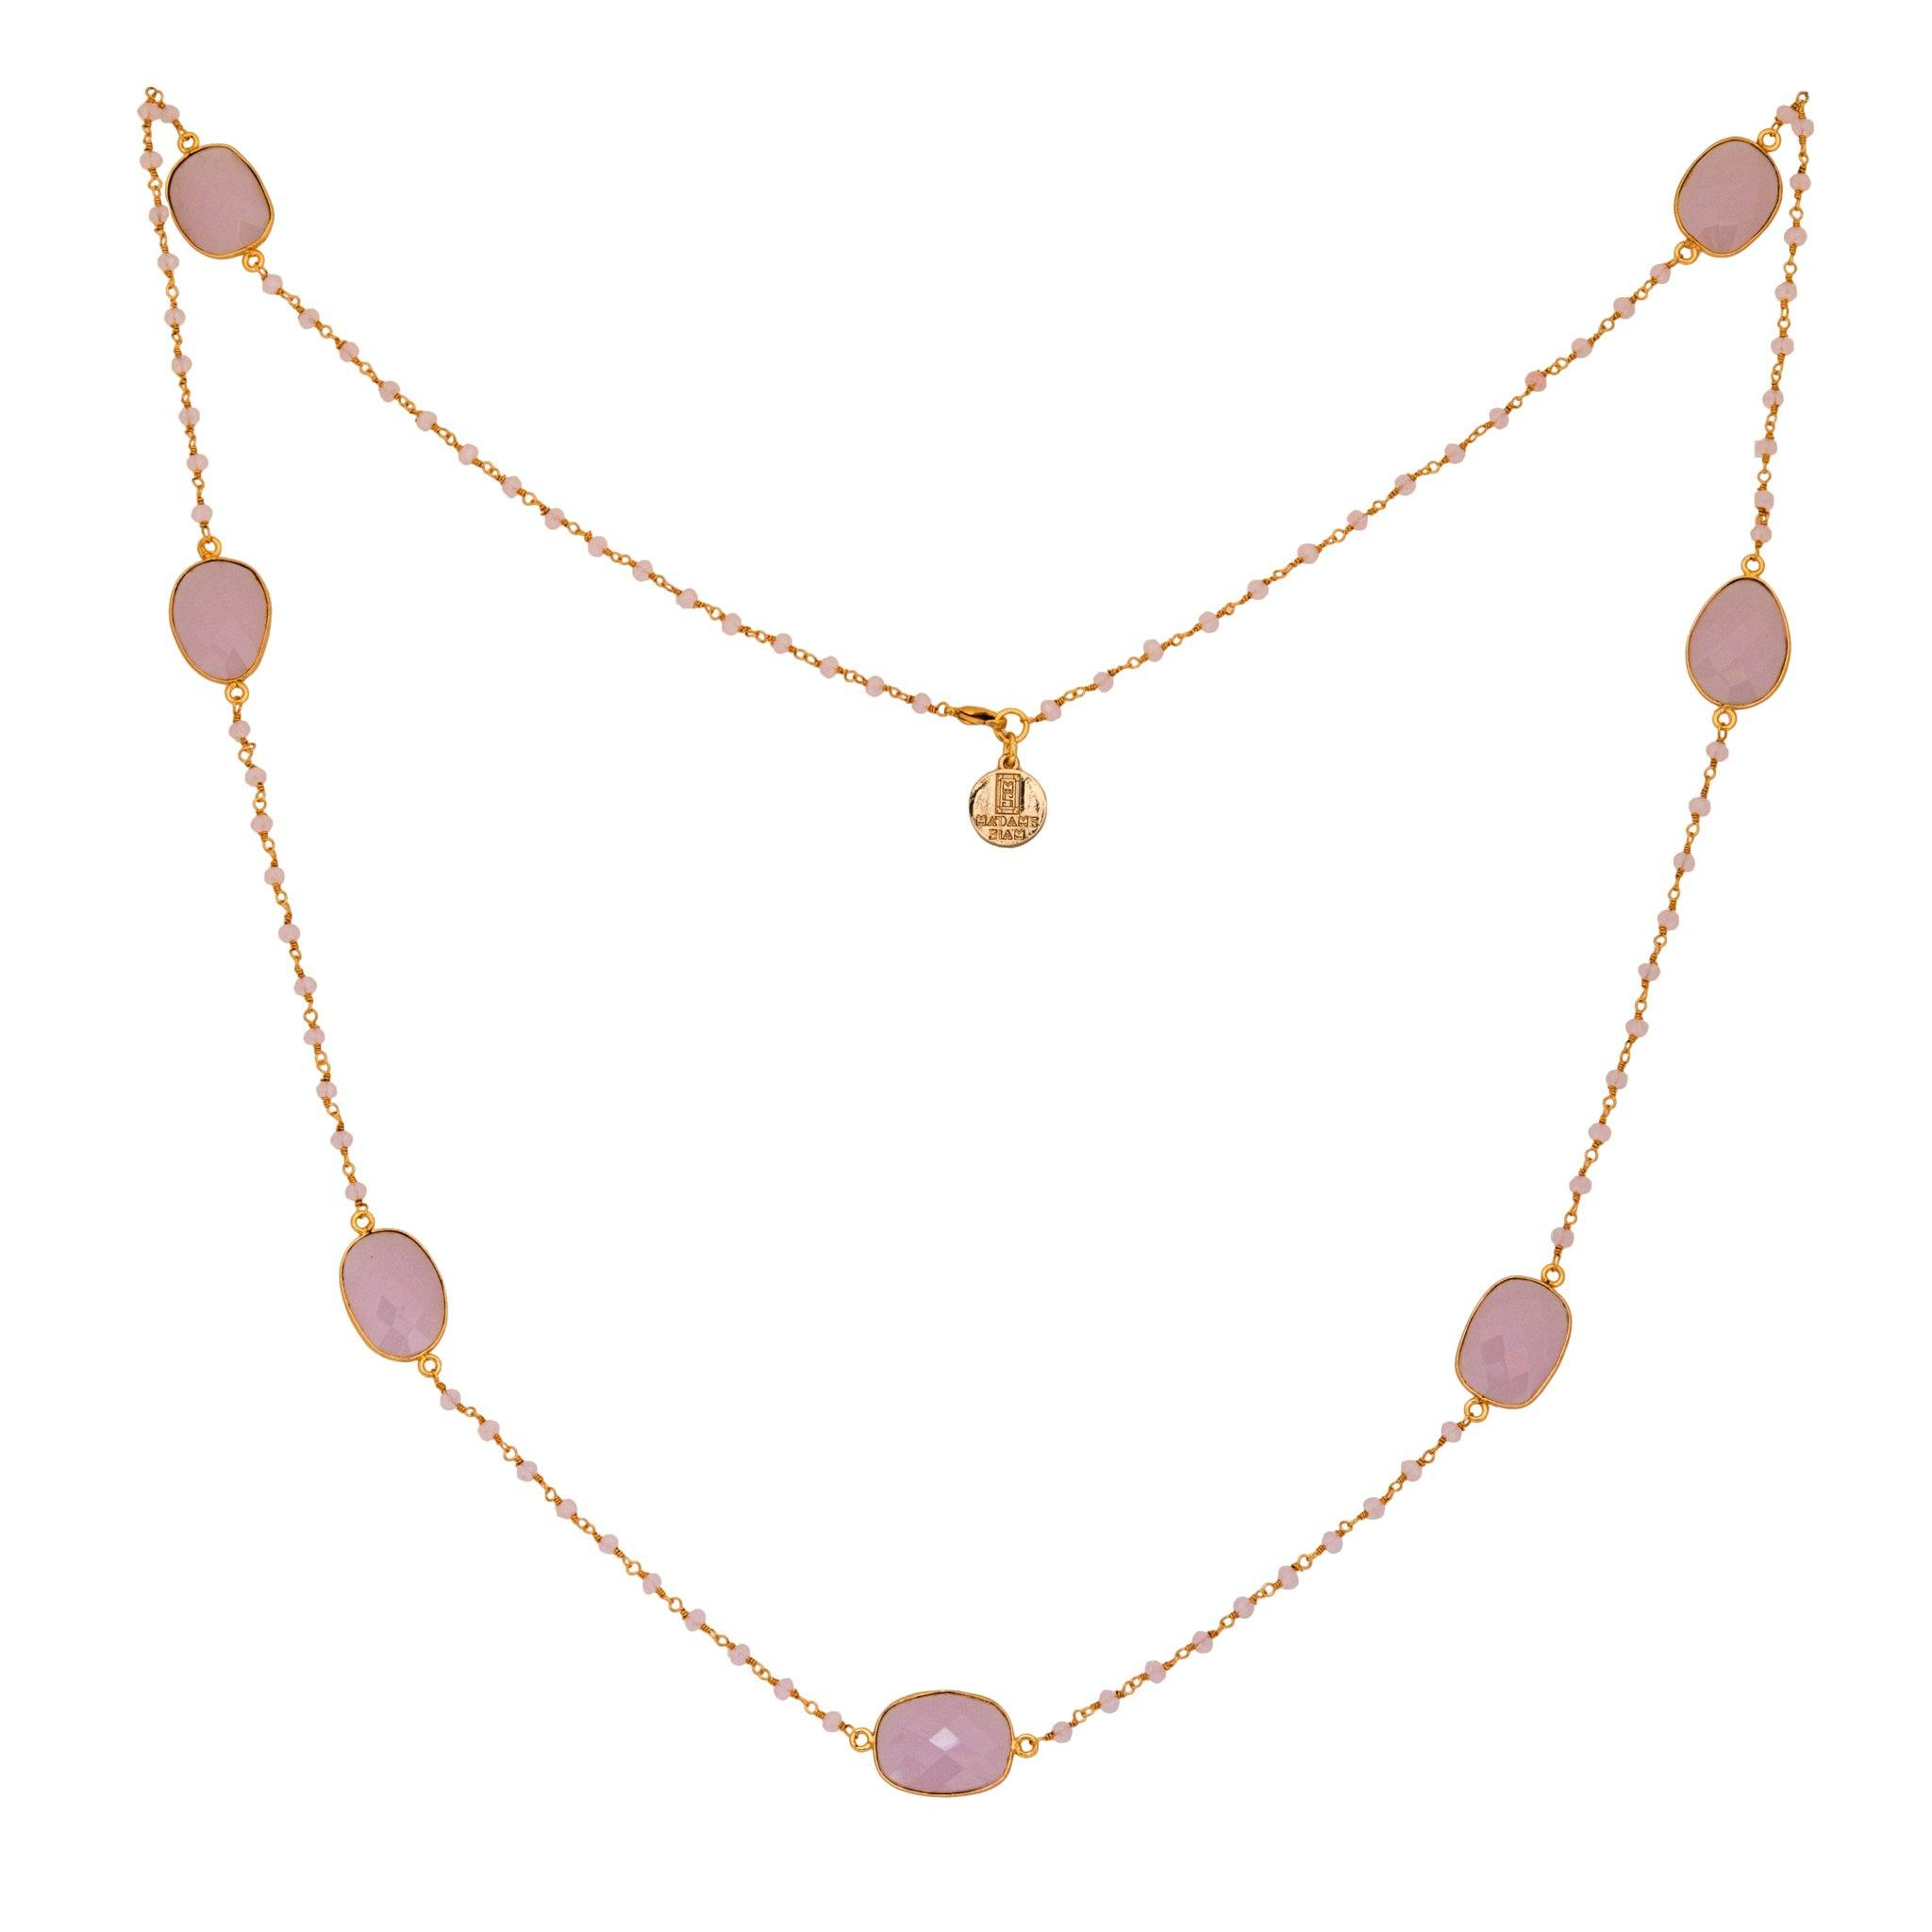 MOUSSON PERLEE rose quartz station necklace with rosary chain - MadamSiam